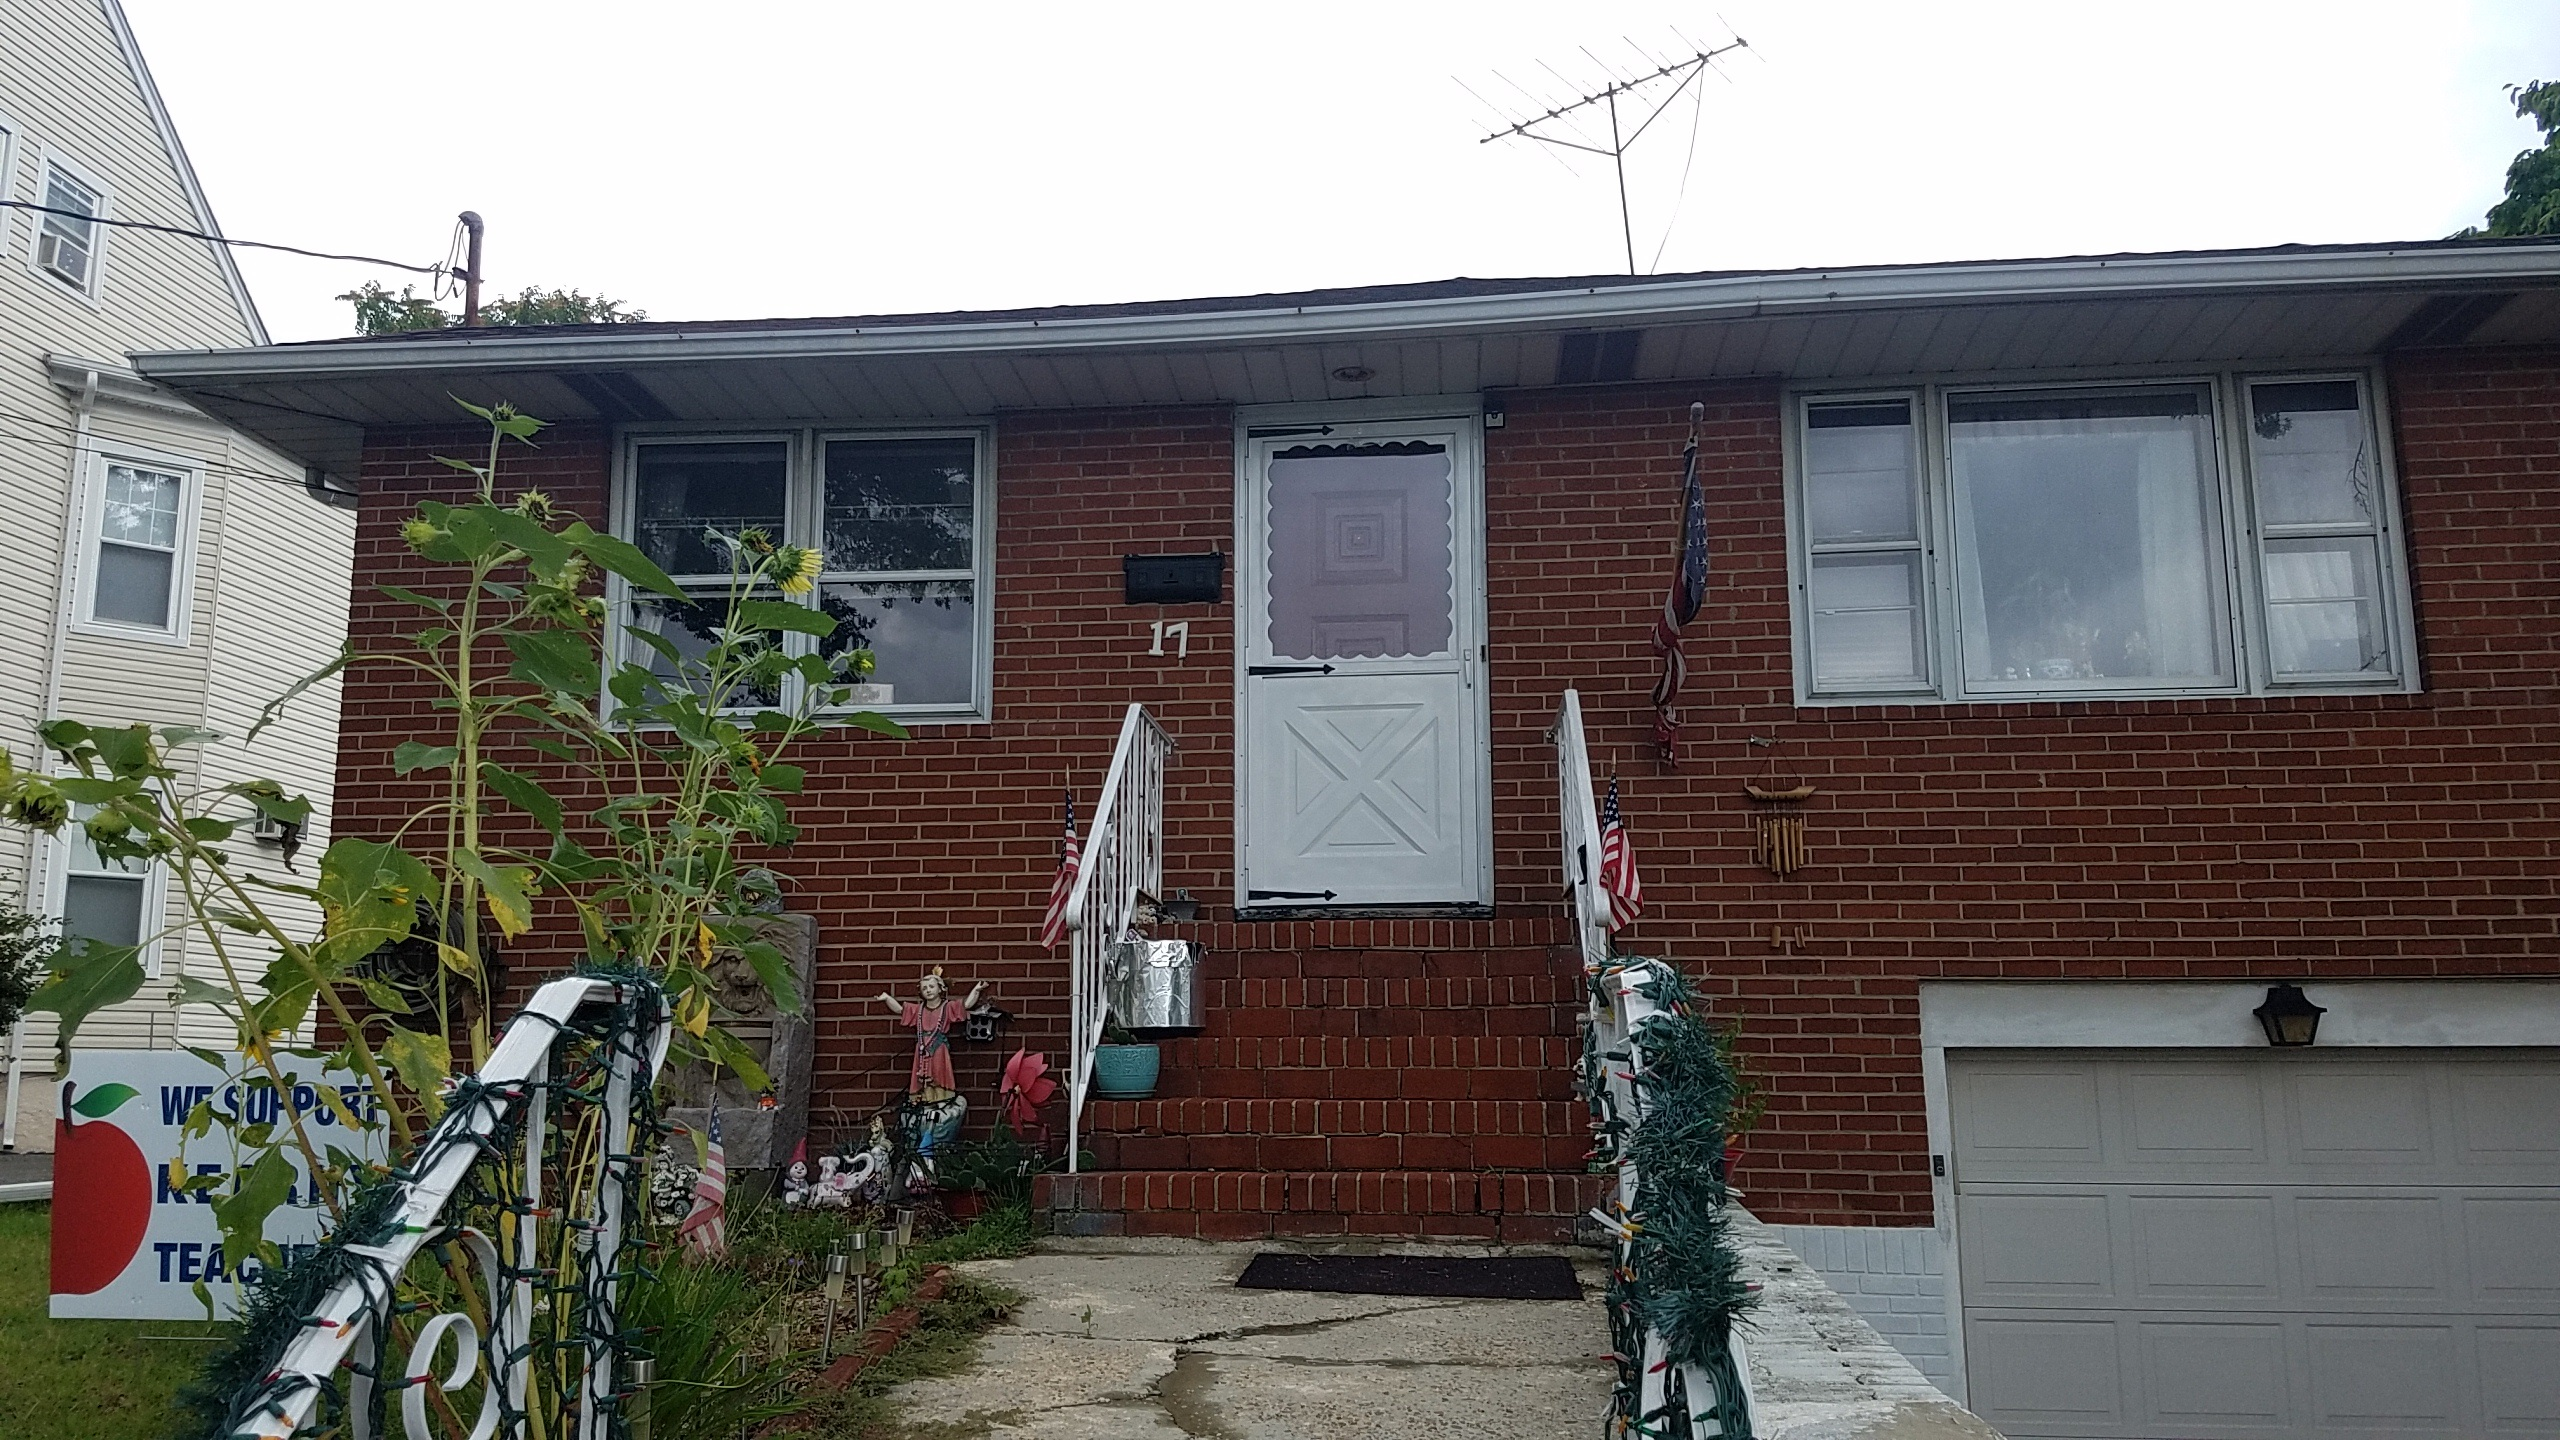 NEW REO – 17 STUYVESANT AVE, KEARNY, NJ 07032 – $299,900